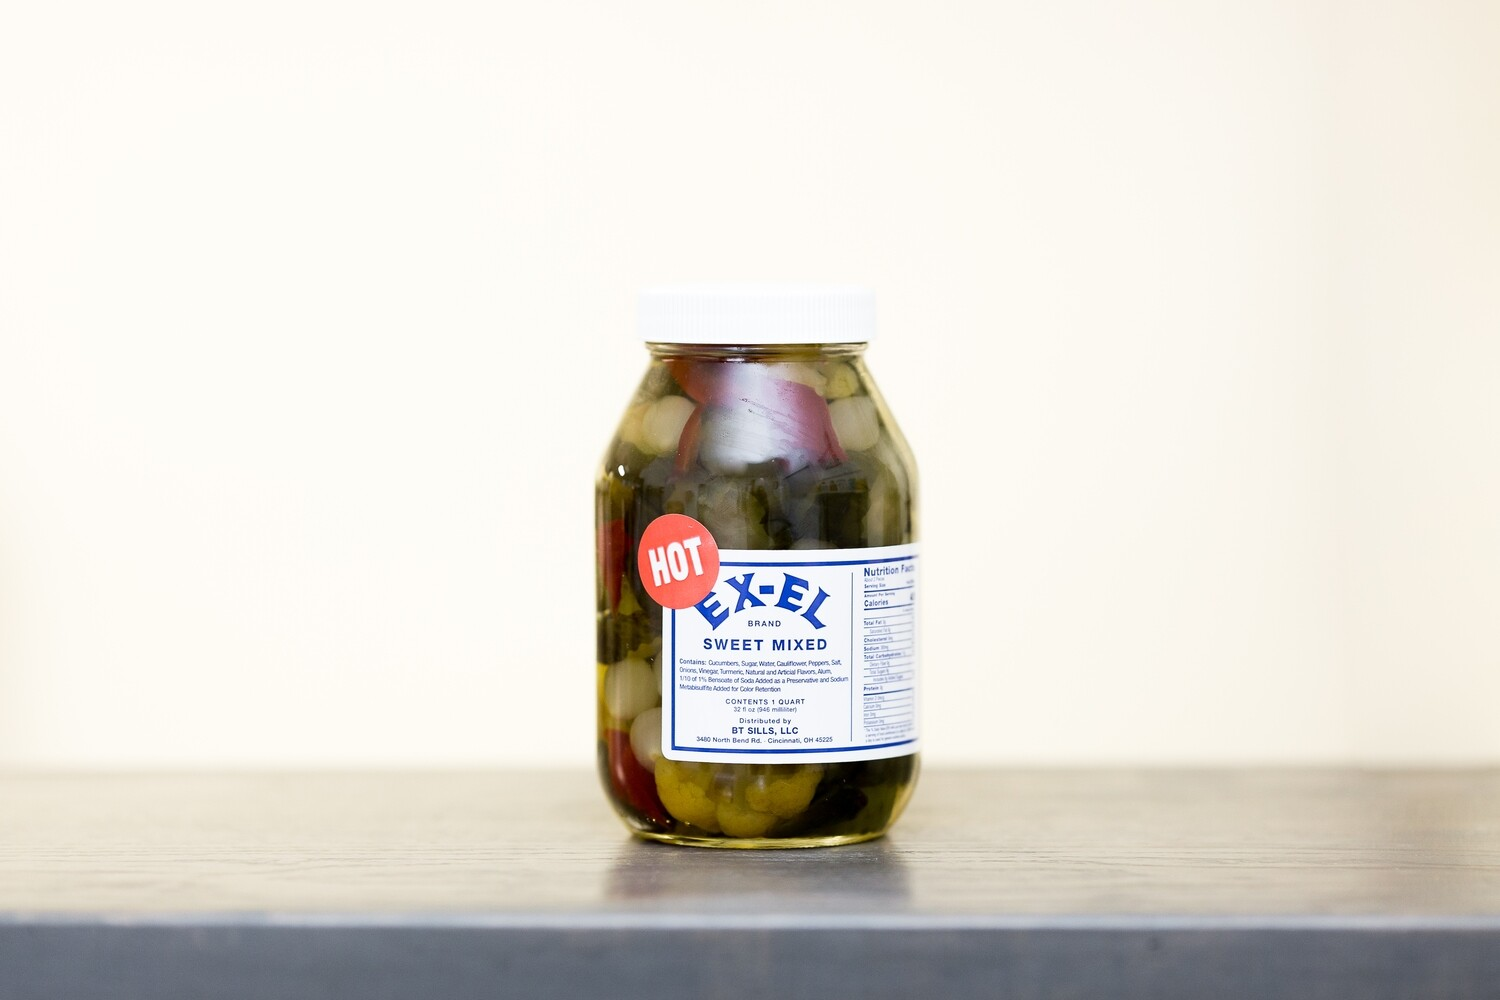 Hot Sweet Mixed Pickles